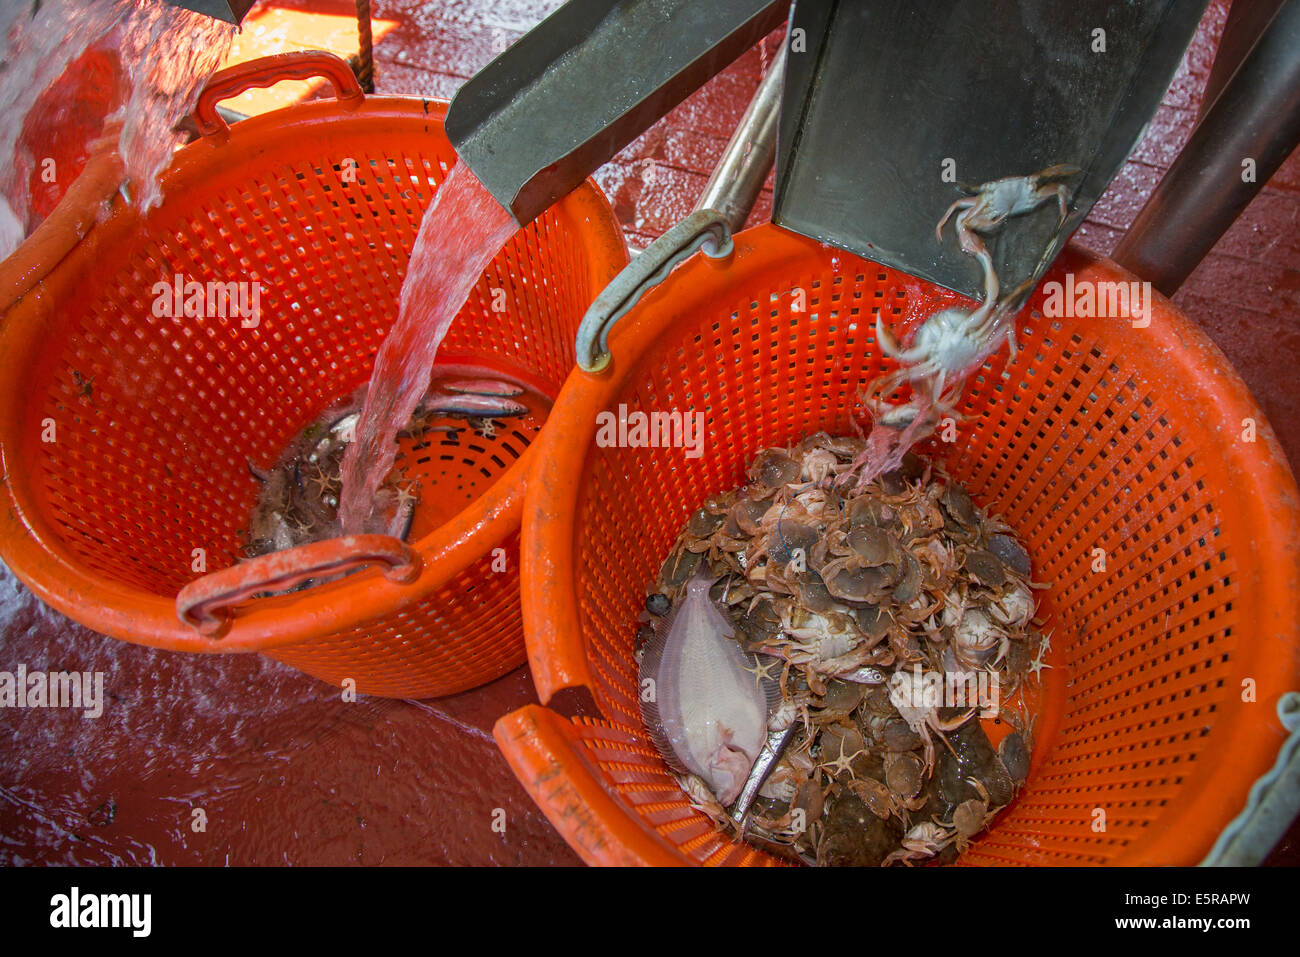 Bycatch like small fish and crabs sorted in plastic baskets on shrimp boat fishing for shrimps on the North Sea - Stock Image